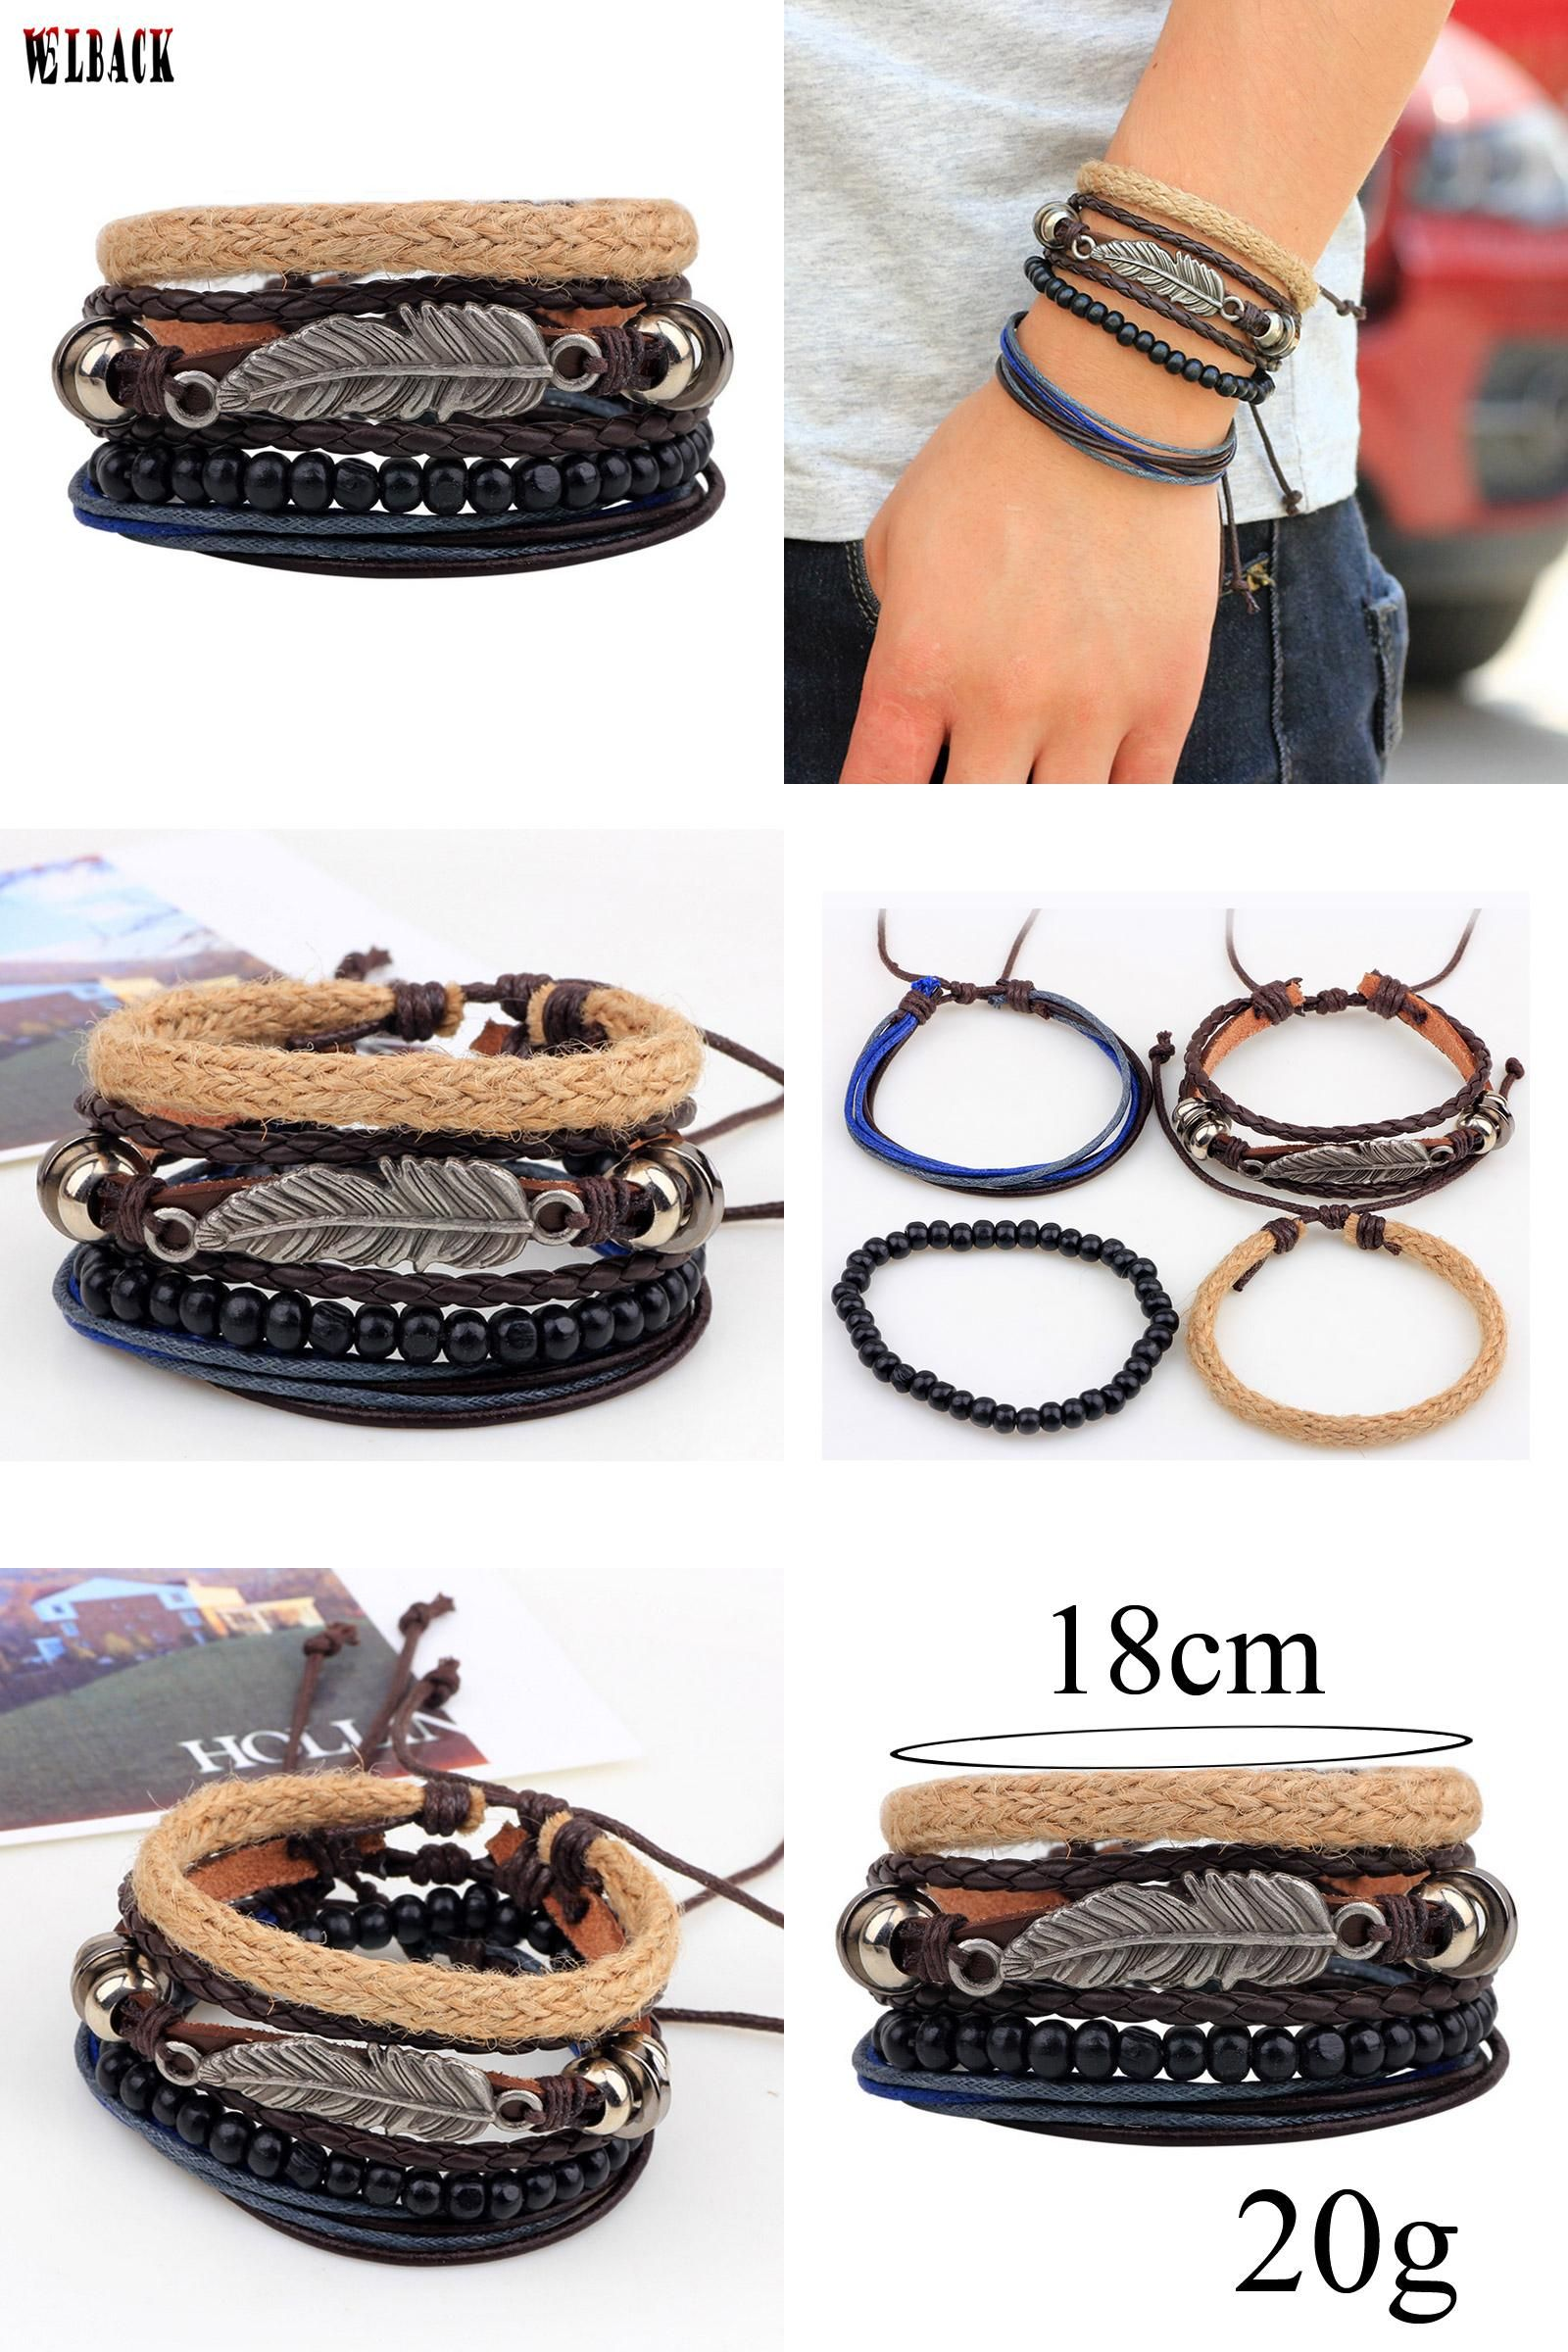 Visit to buy new design multilayer laceup leather popular